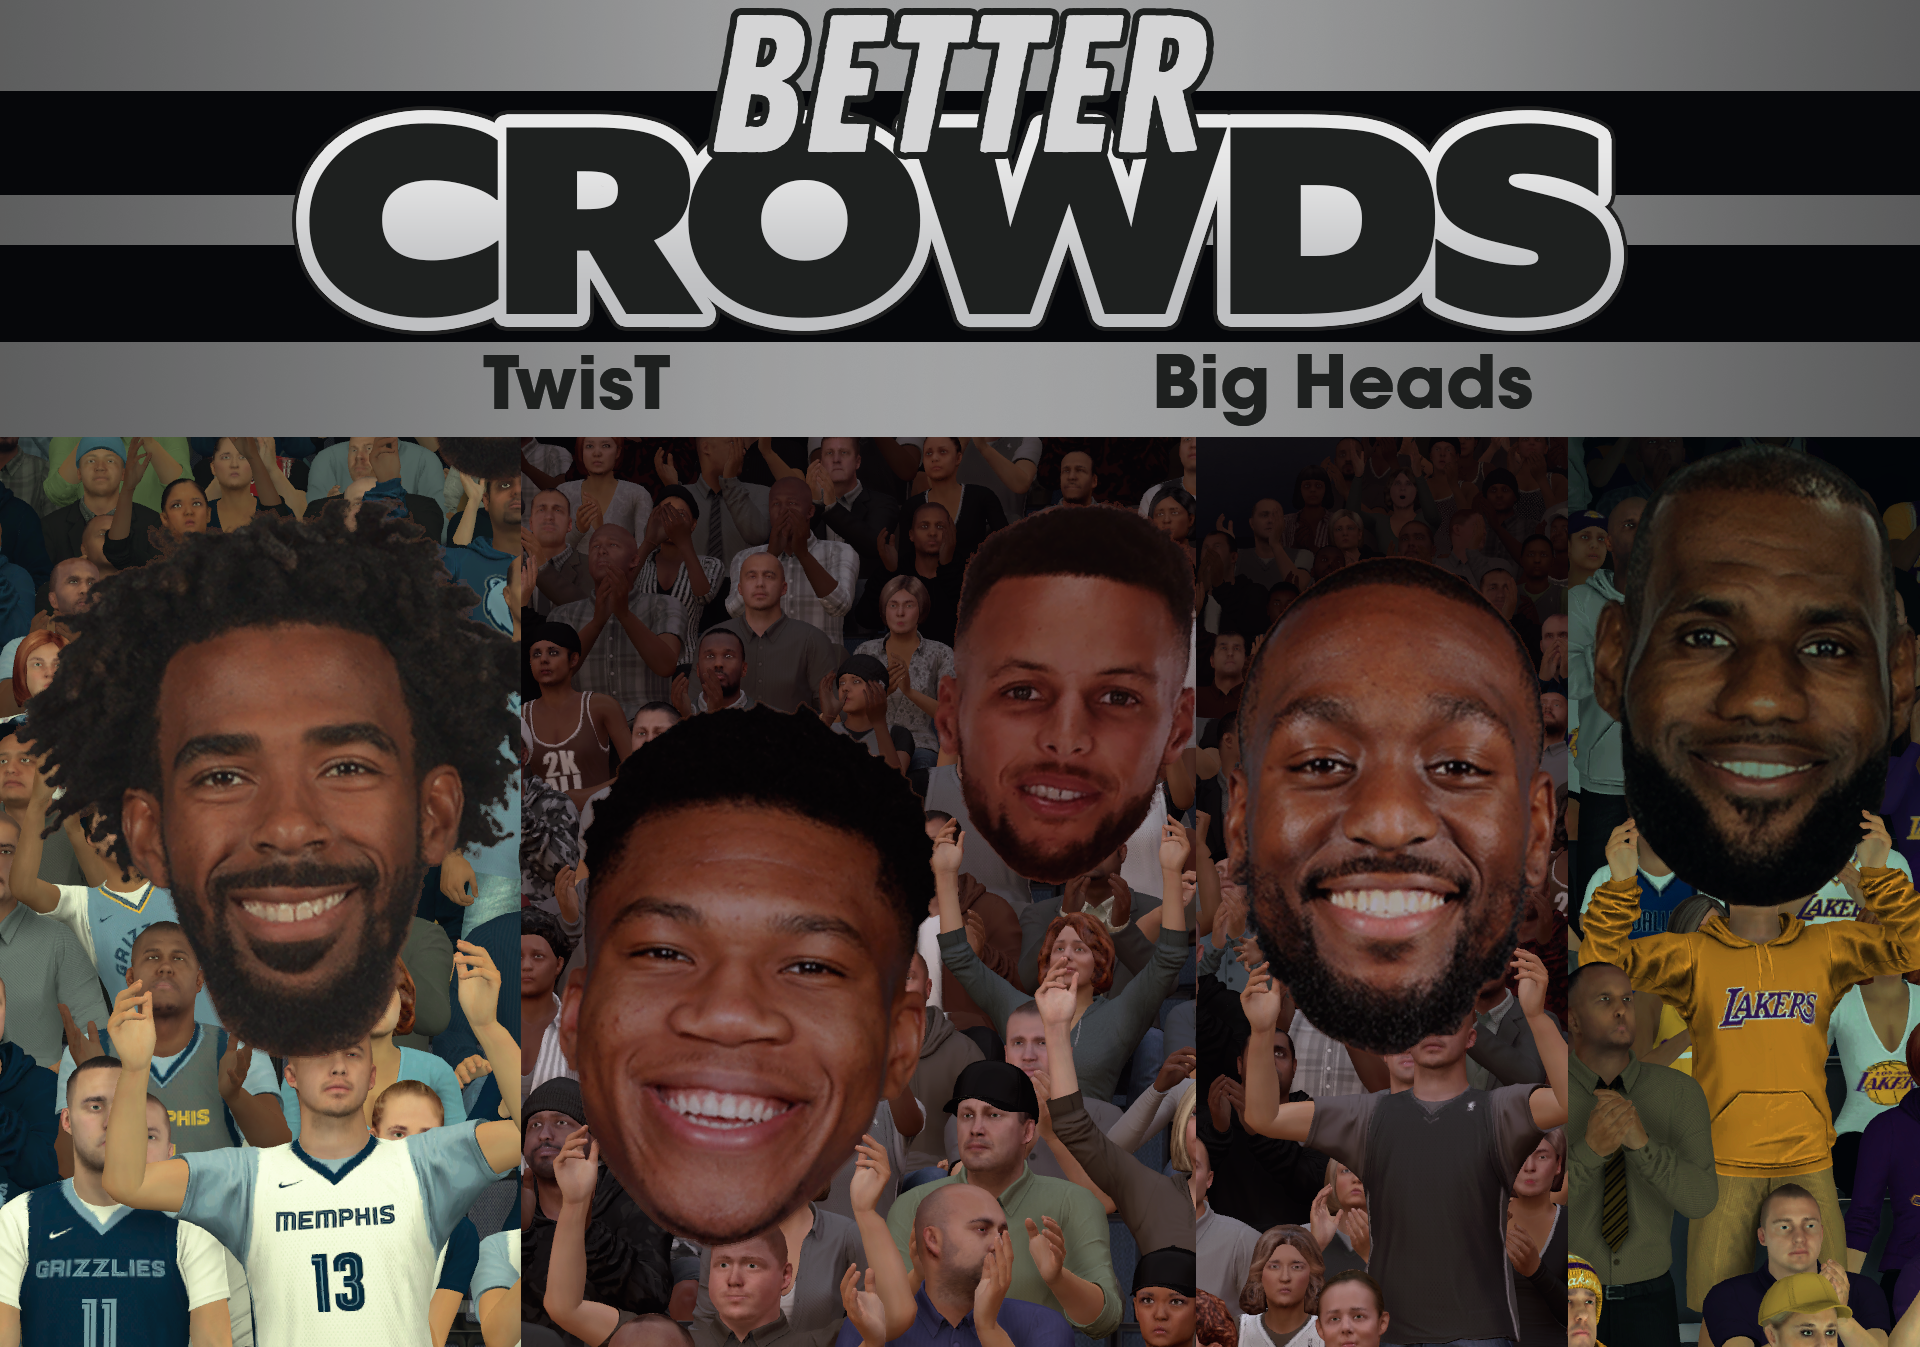 Crowd Update - Big Heads